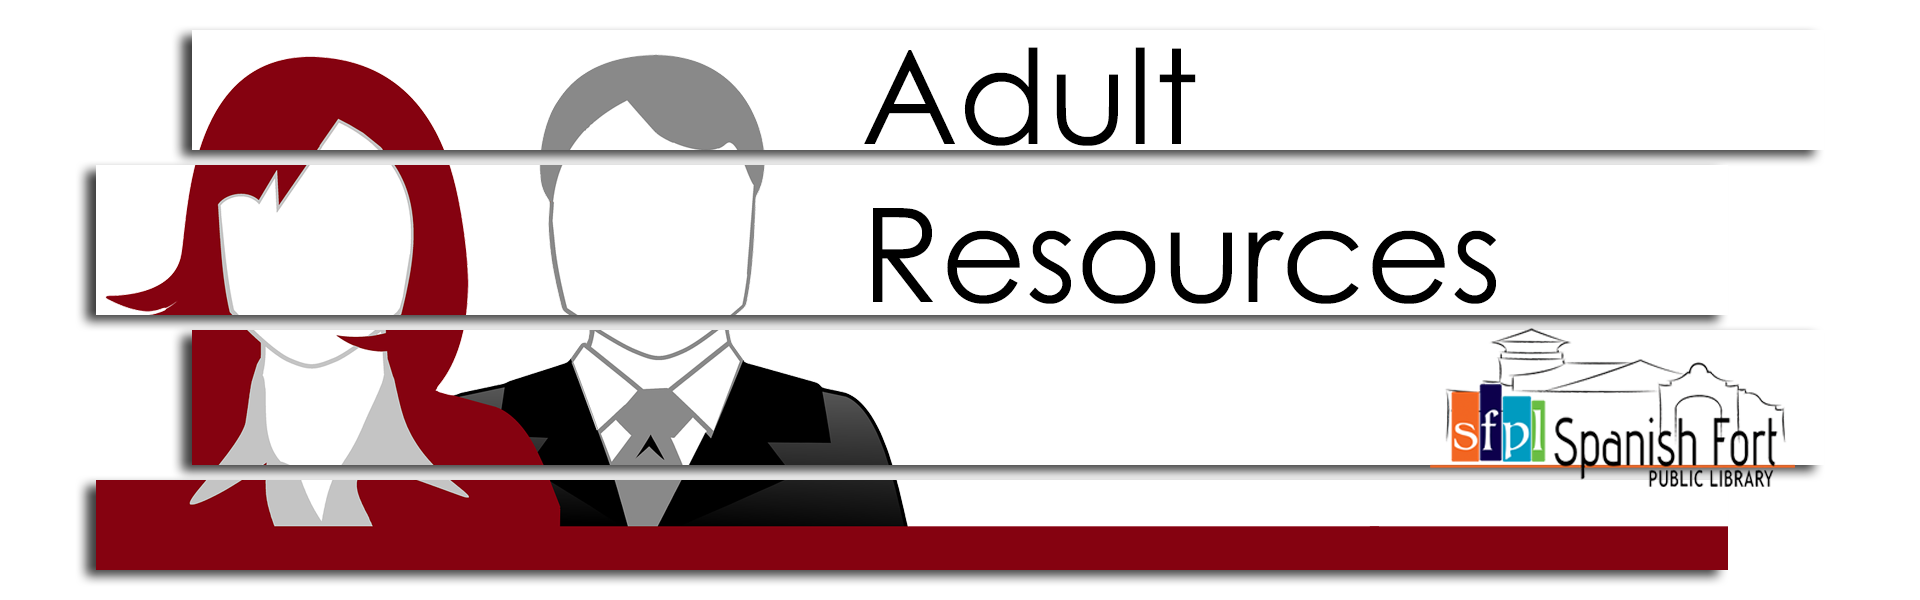 Adult Resources image banner with male and female figures in business attire shown from chest up burgundy and white color palette